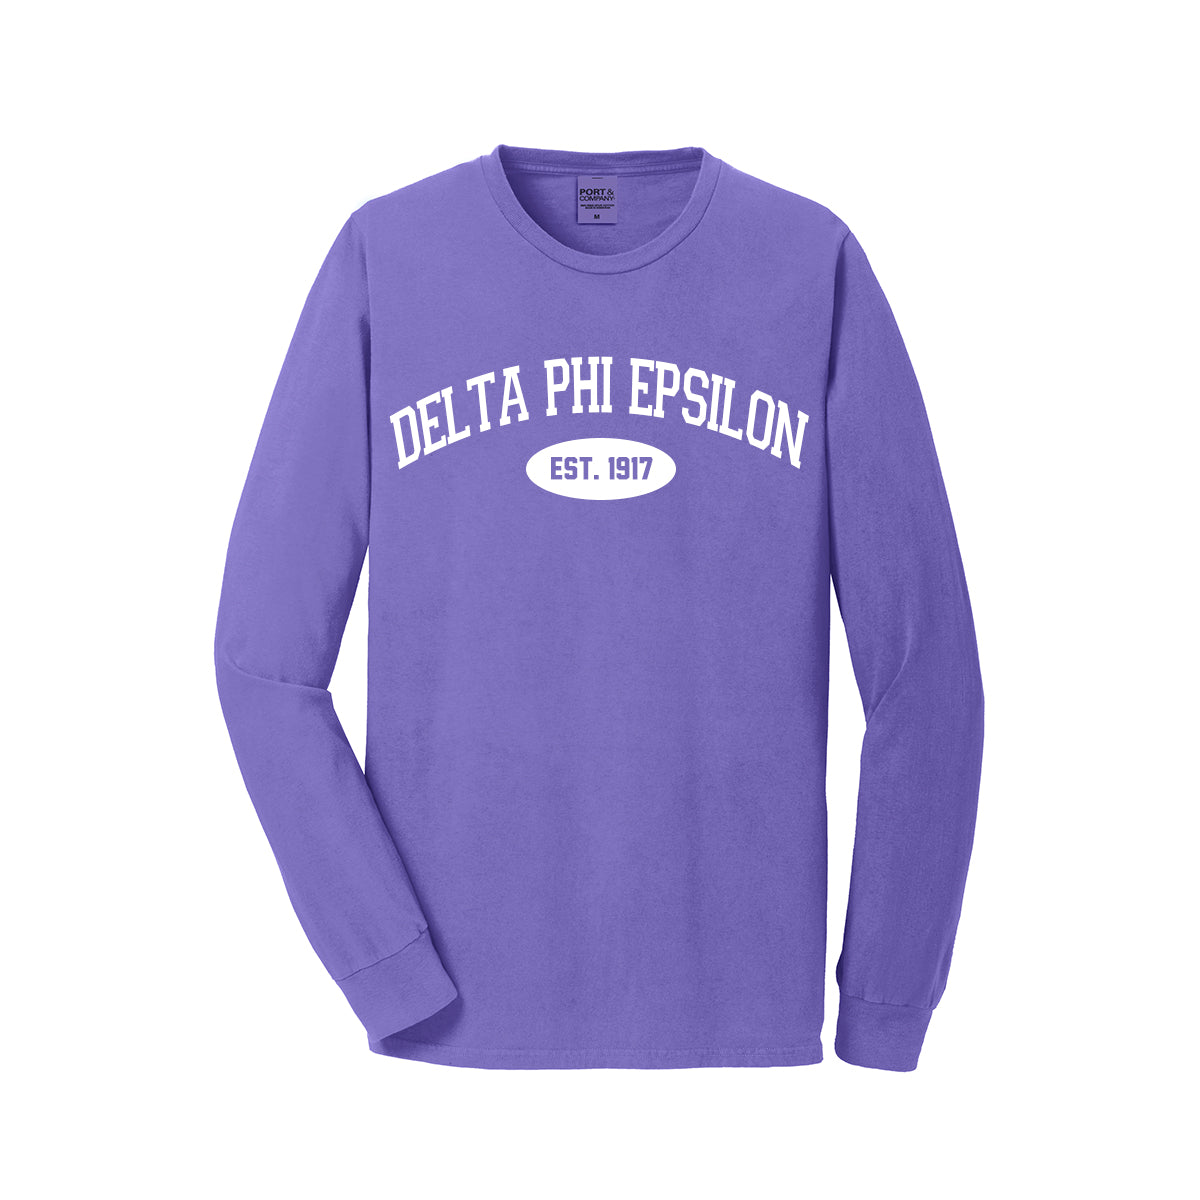 Delta Phi Epsilon Long Sleeve Vintage T-Shirt